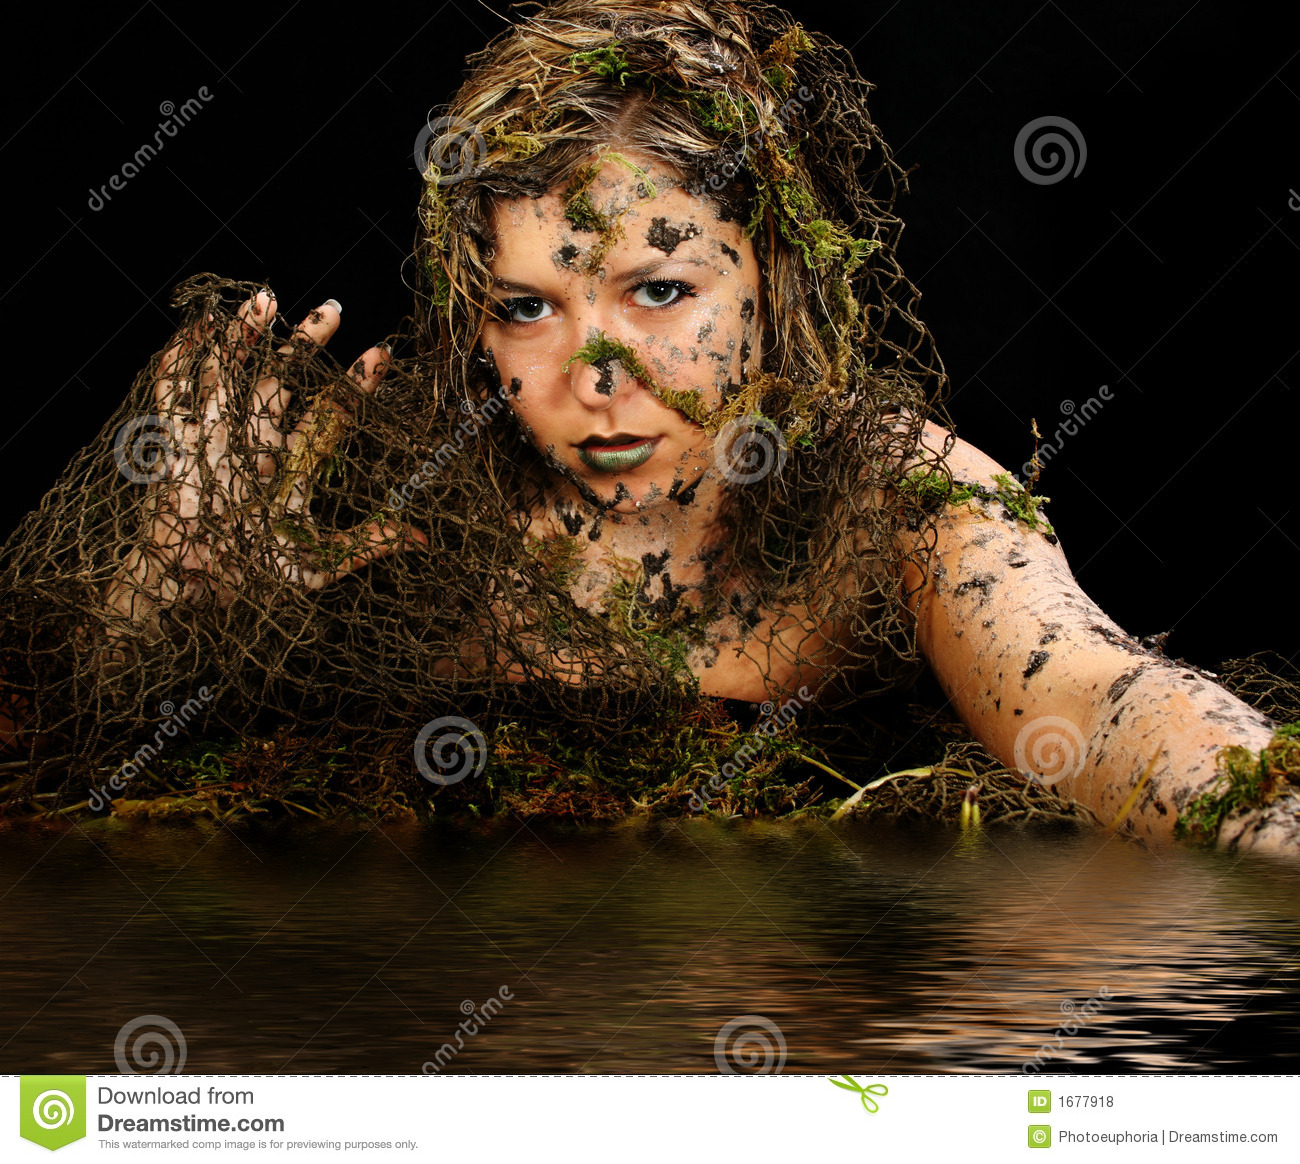 Swamp creature fucks girl pornos picture